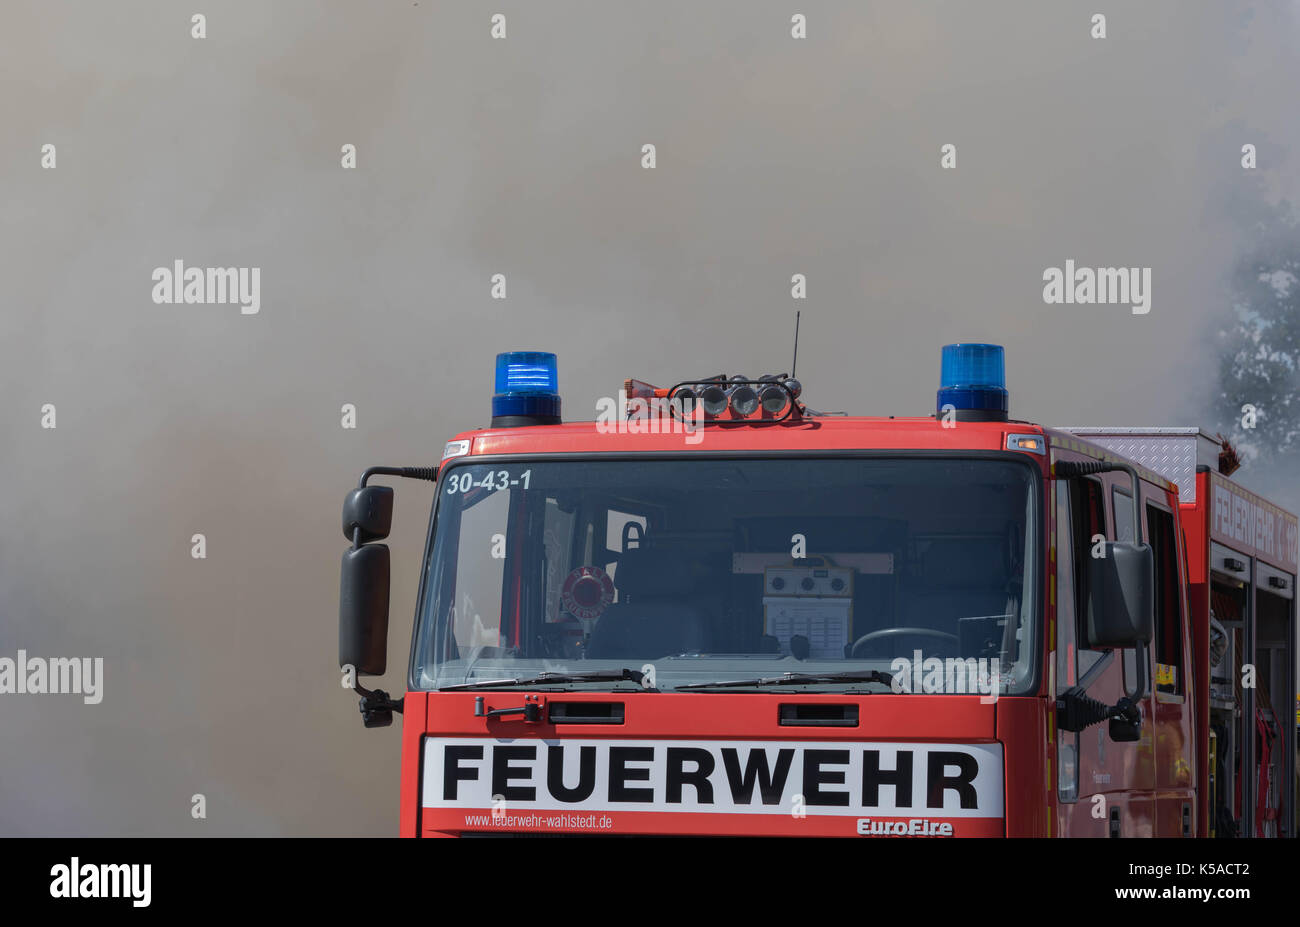 Bad Segeberg, Germany, September 03, 2017, Fire Truck in the middle of the Smoke during a fire demonstration - Stock Image